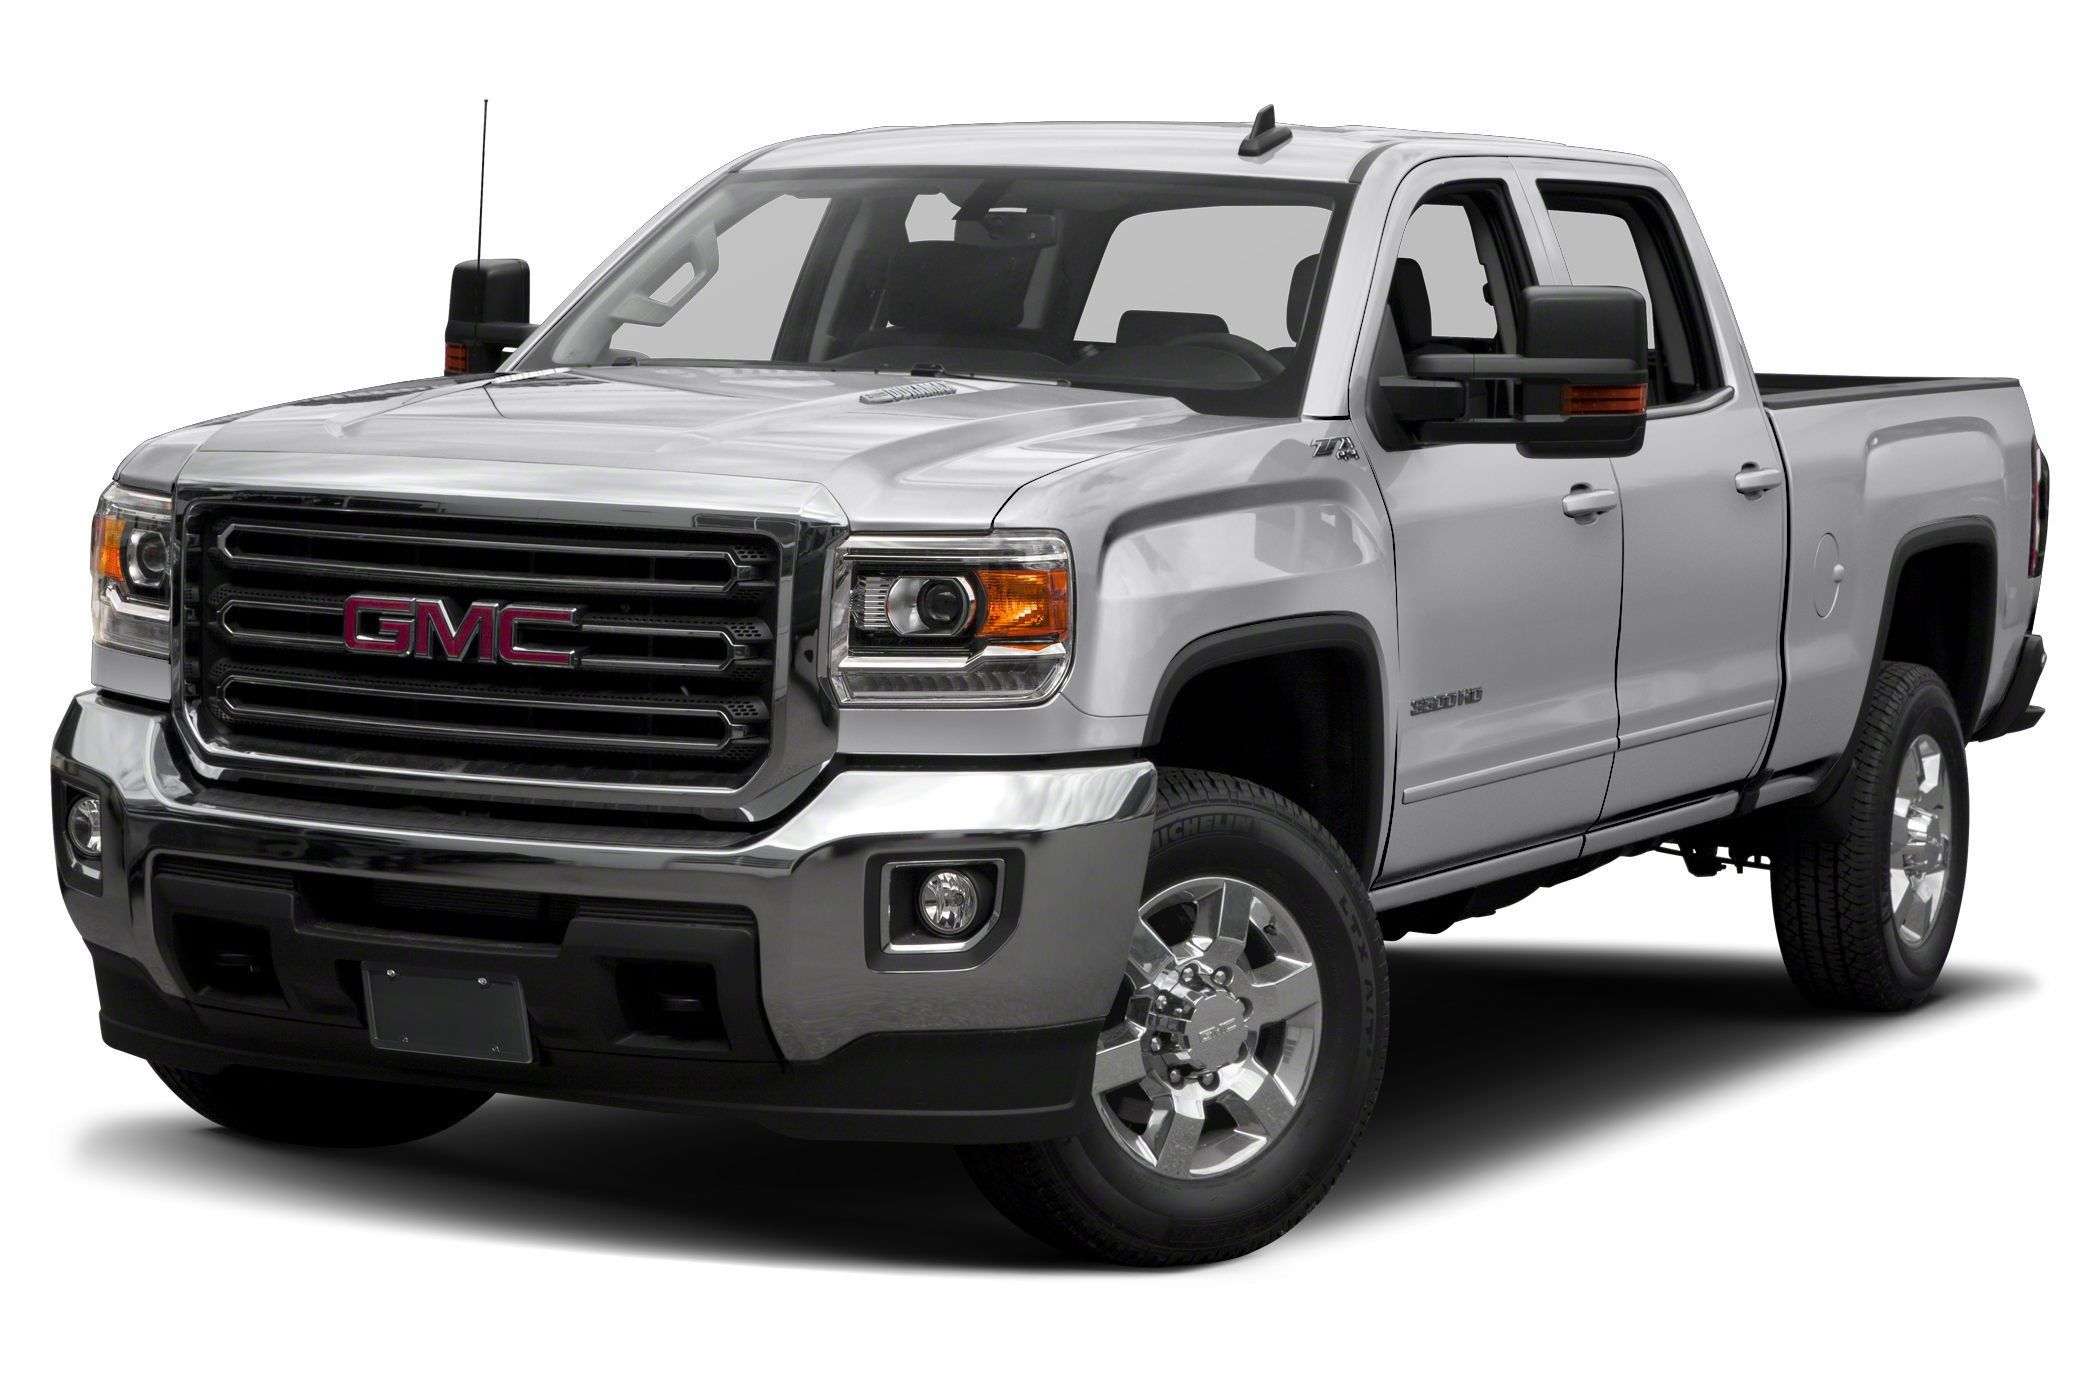 2020 Chevy 2500hd Duramax Release Date, Price Chevy